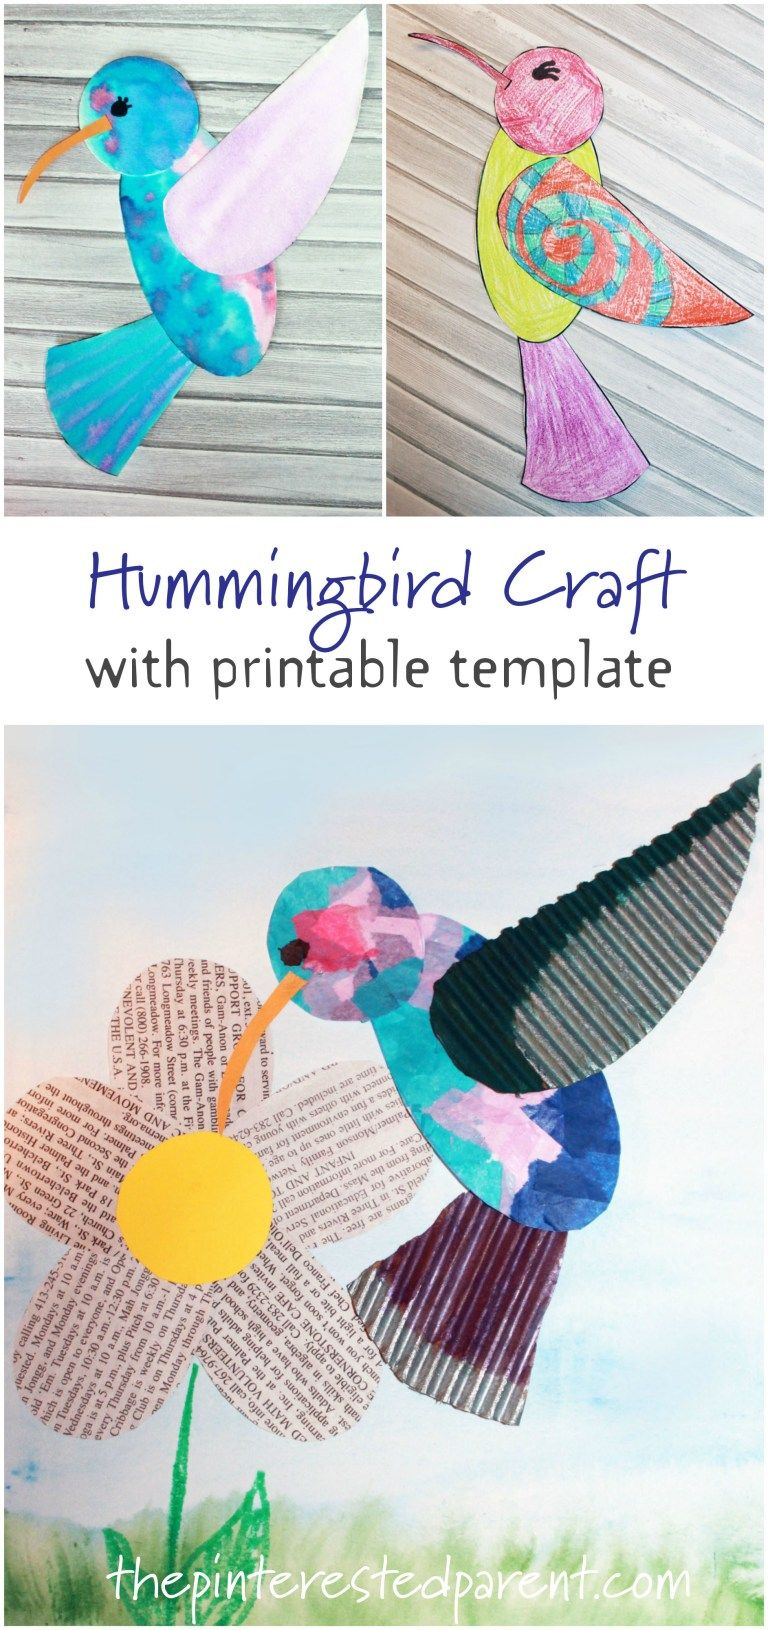 Hummingbird Craft With Printable Rachel Escola Homenagem Aos